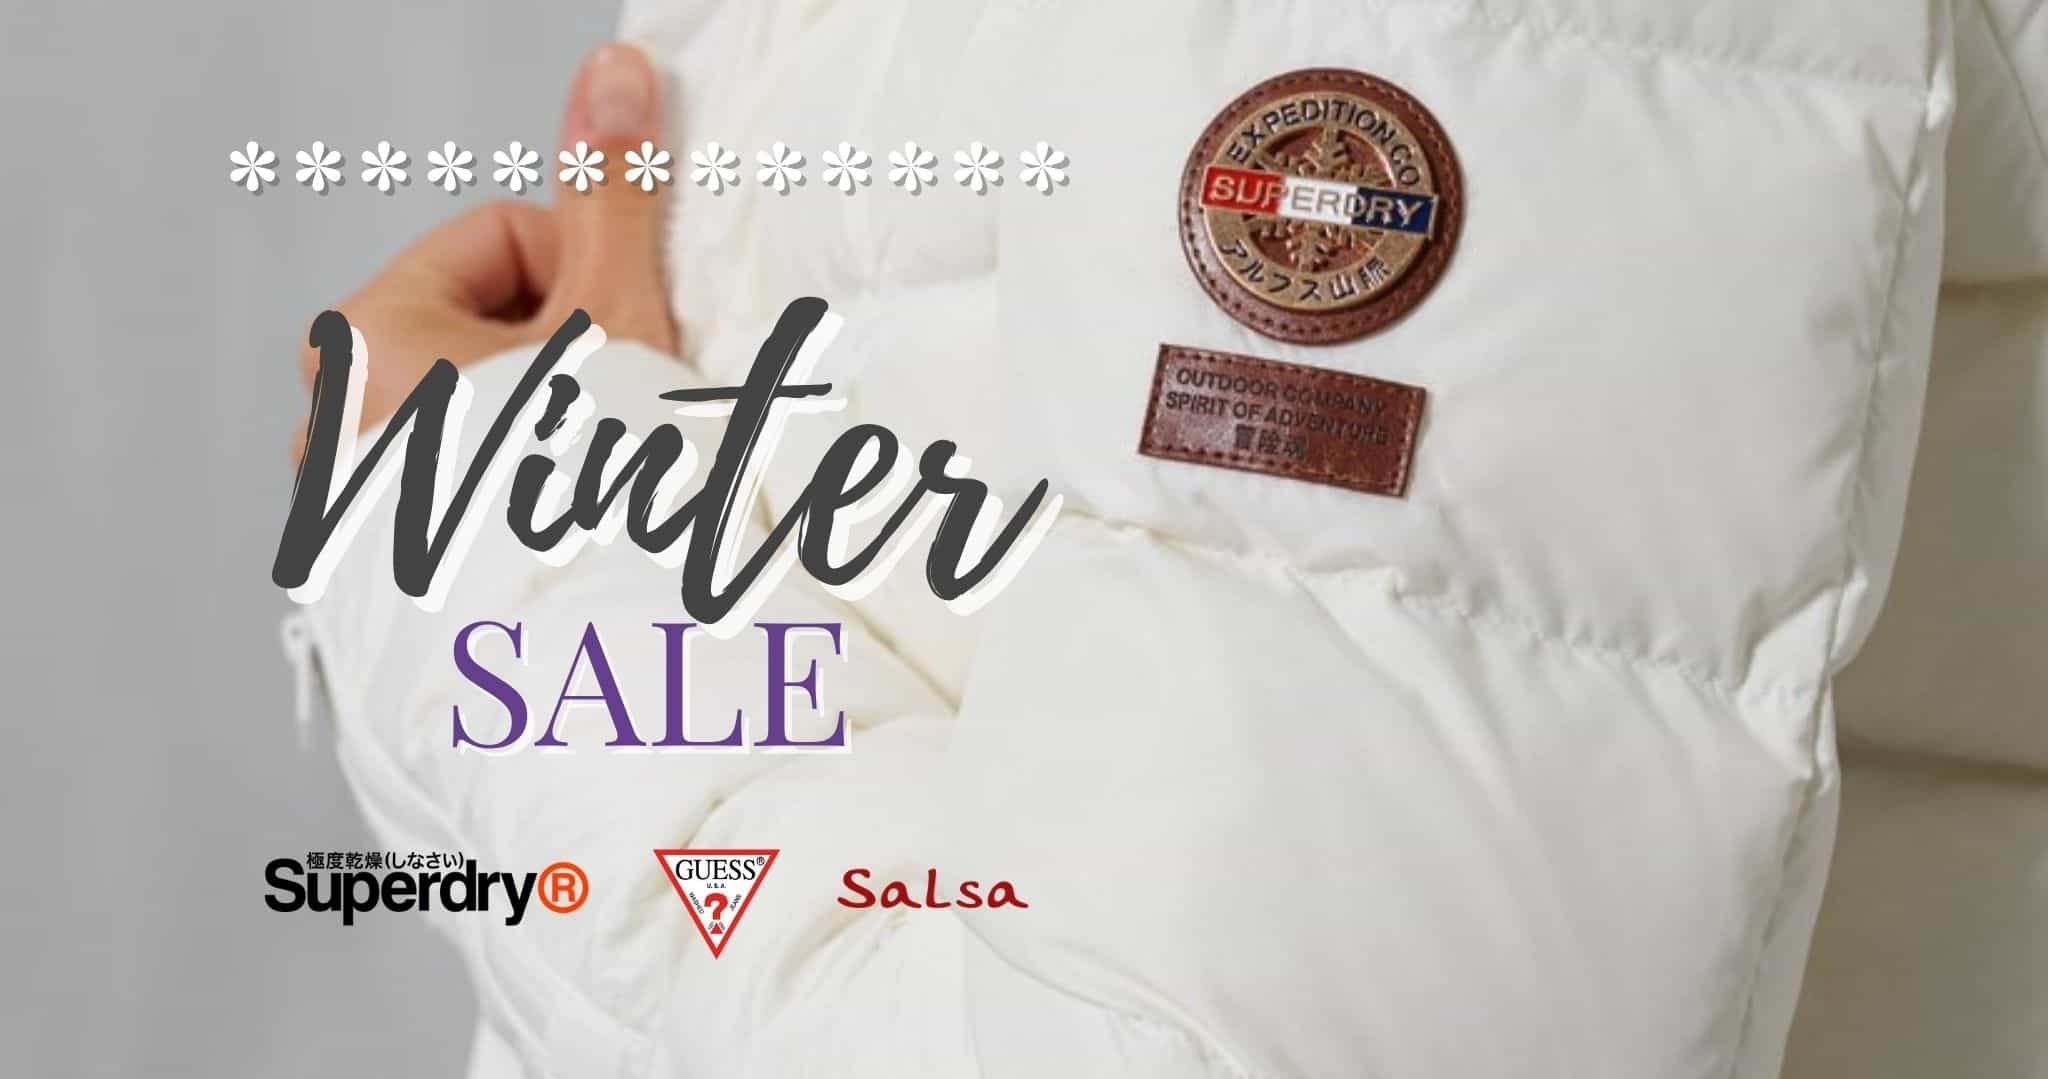 Winter Sale 2020 - Superdry, Guess Salsa Jeans annd more! - The Purple Orange